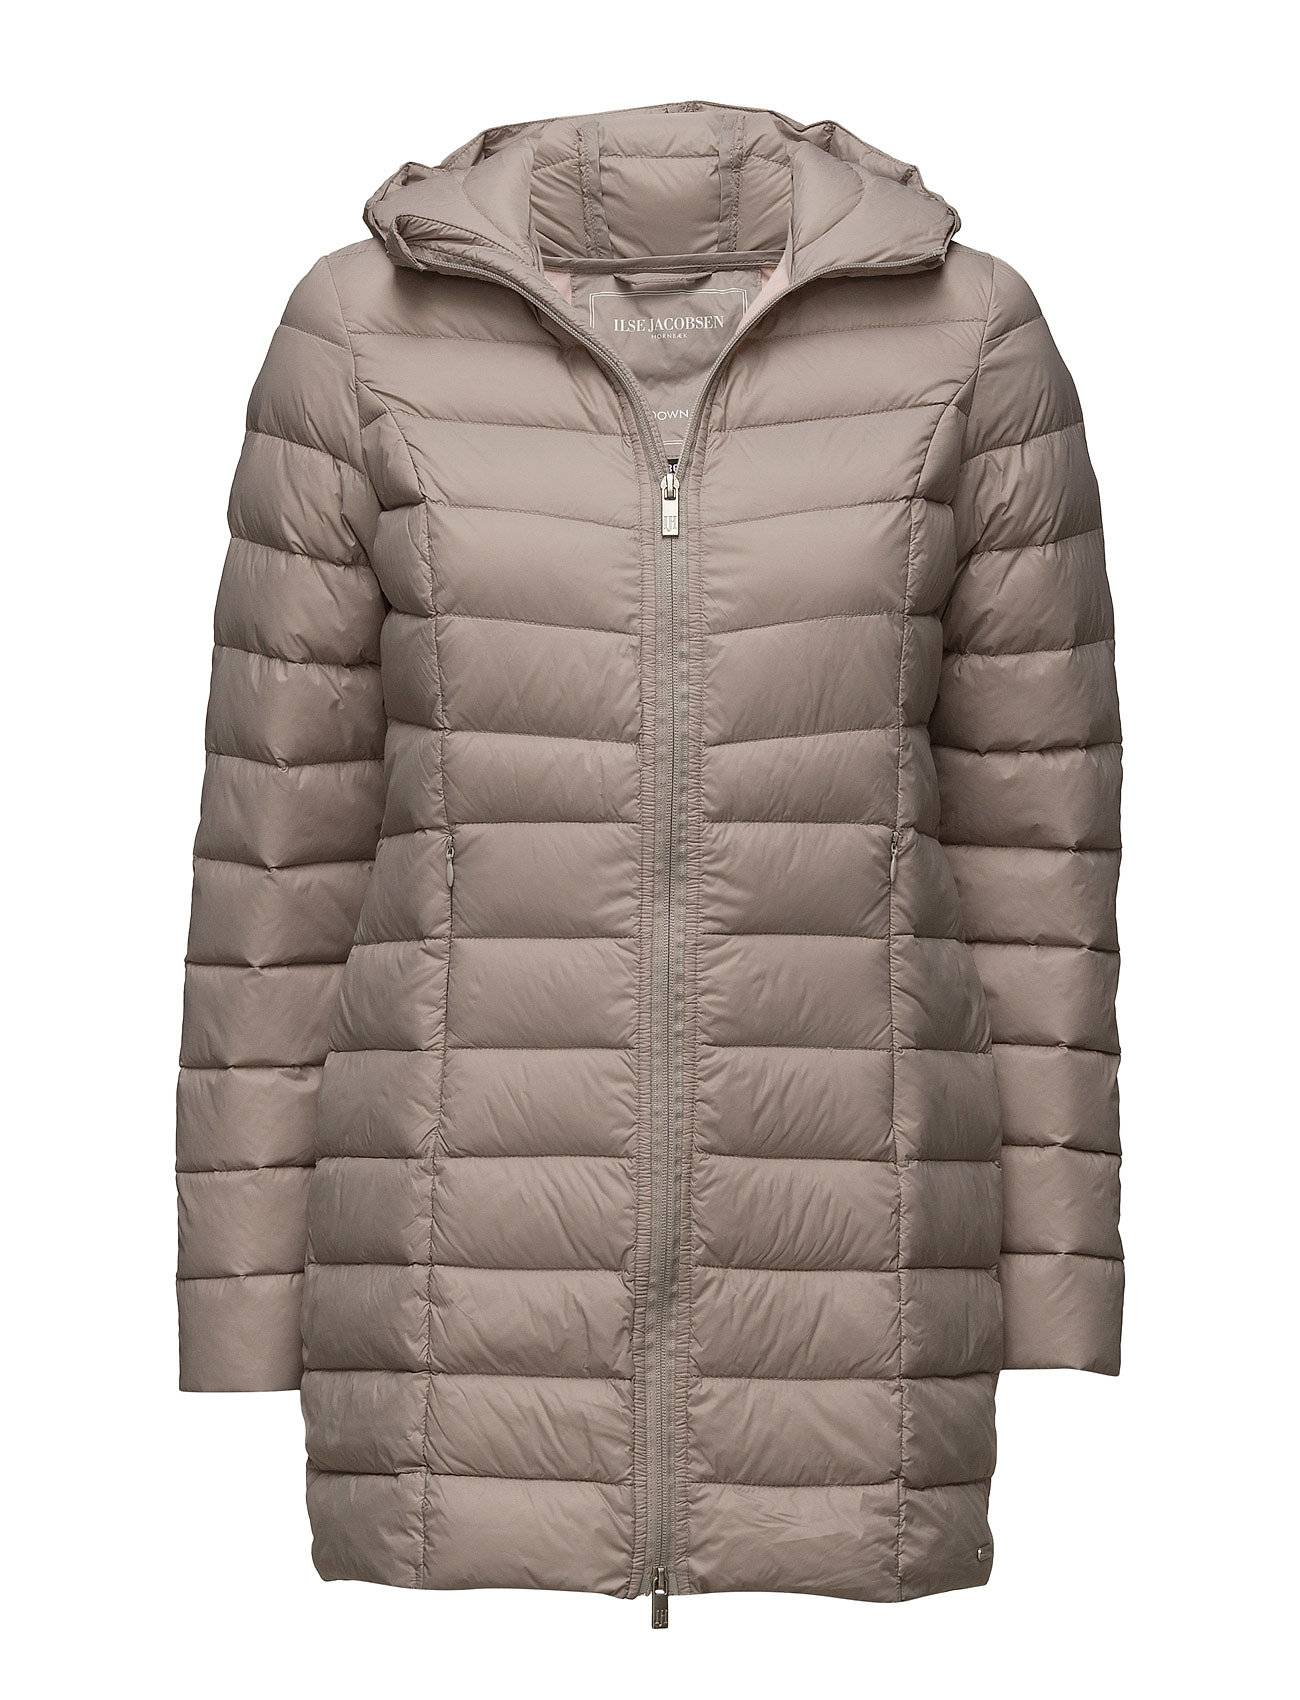 Ilse Jacobsen Woman Light Down Coat